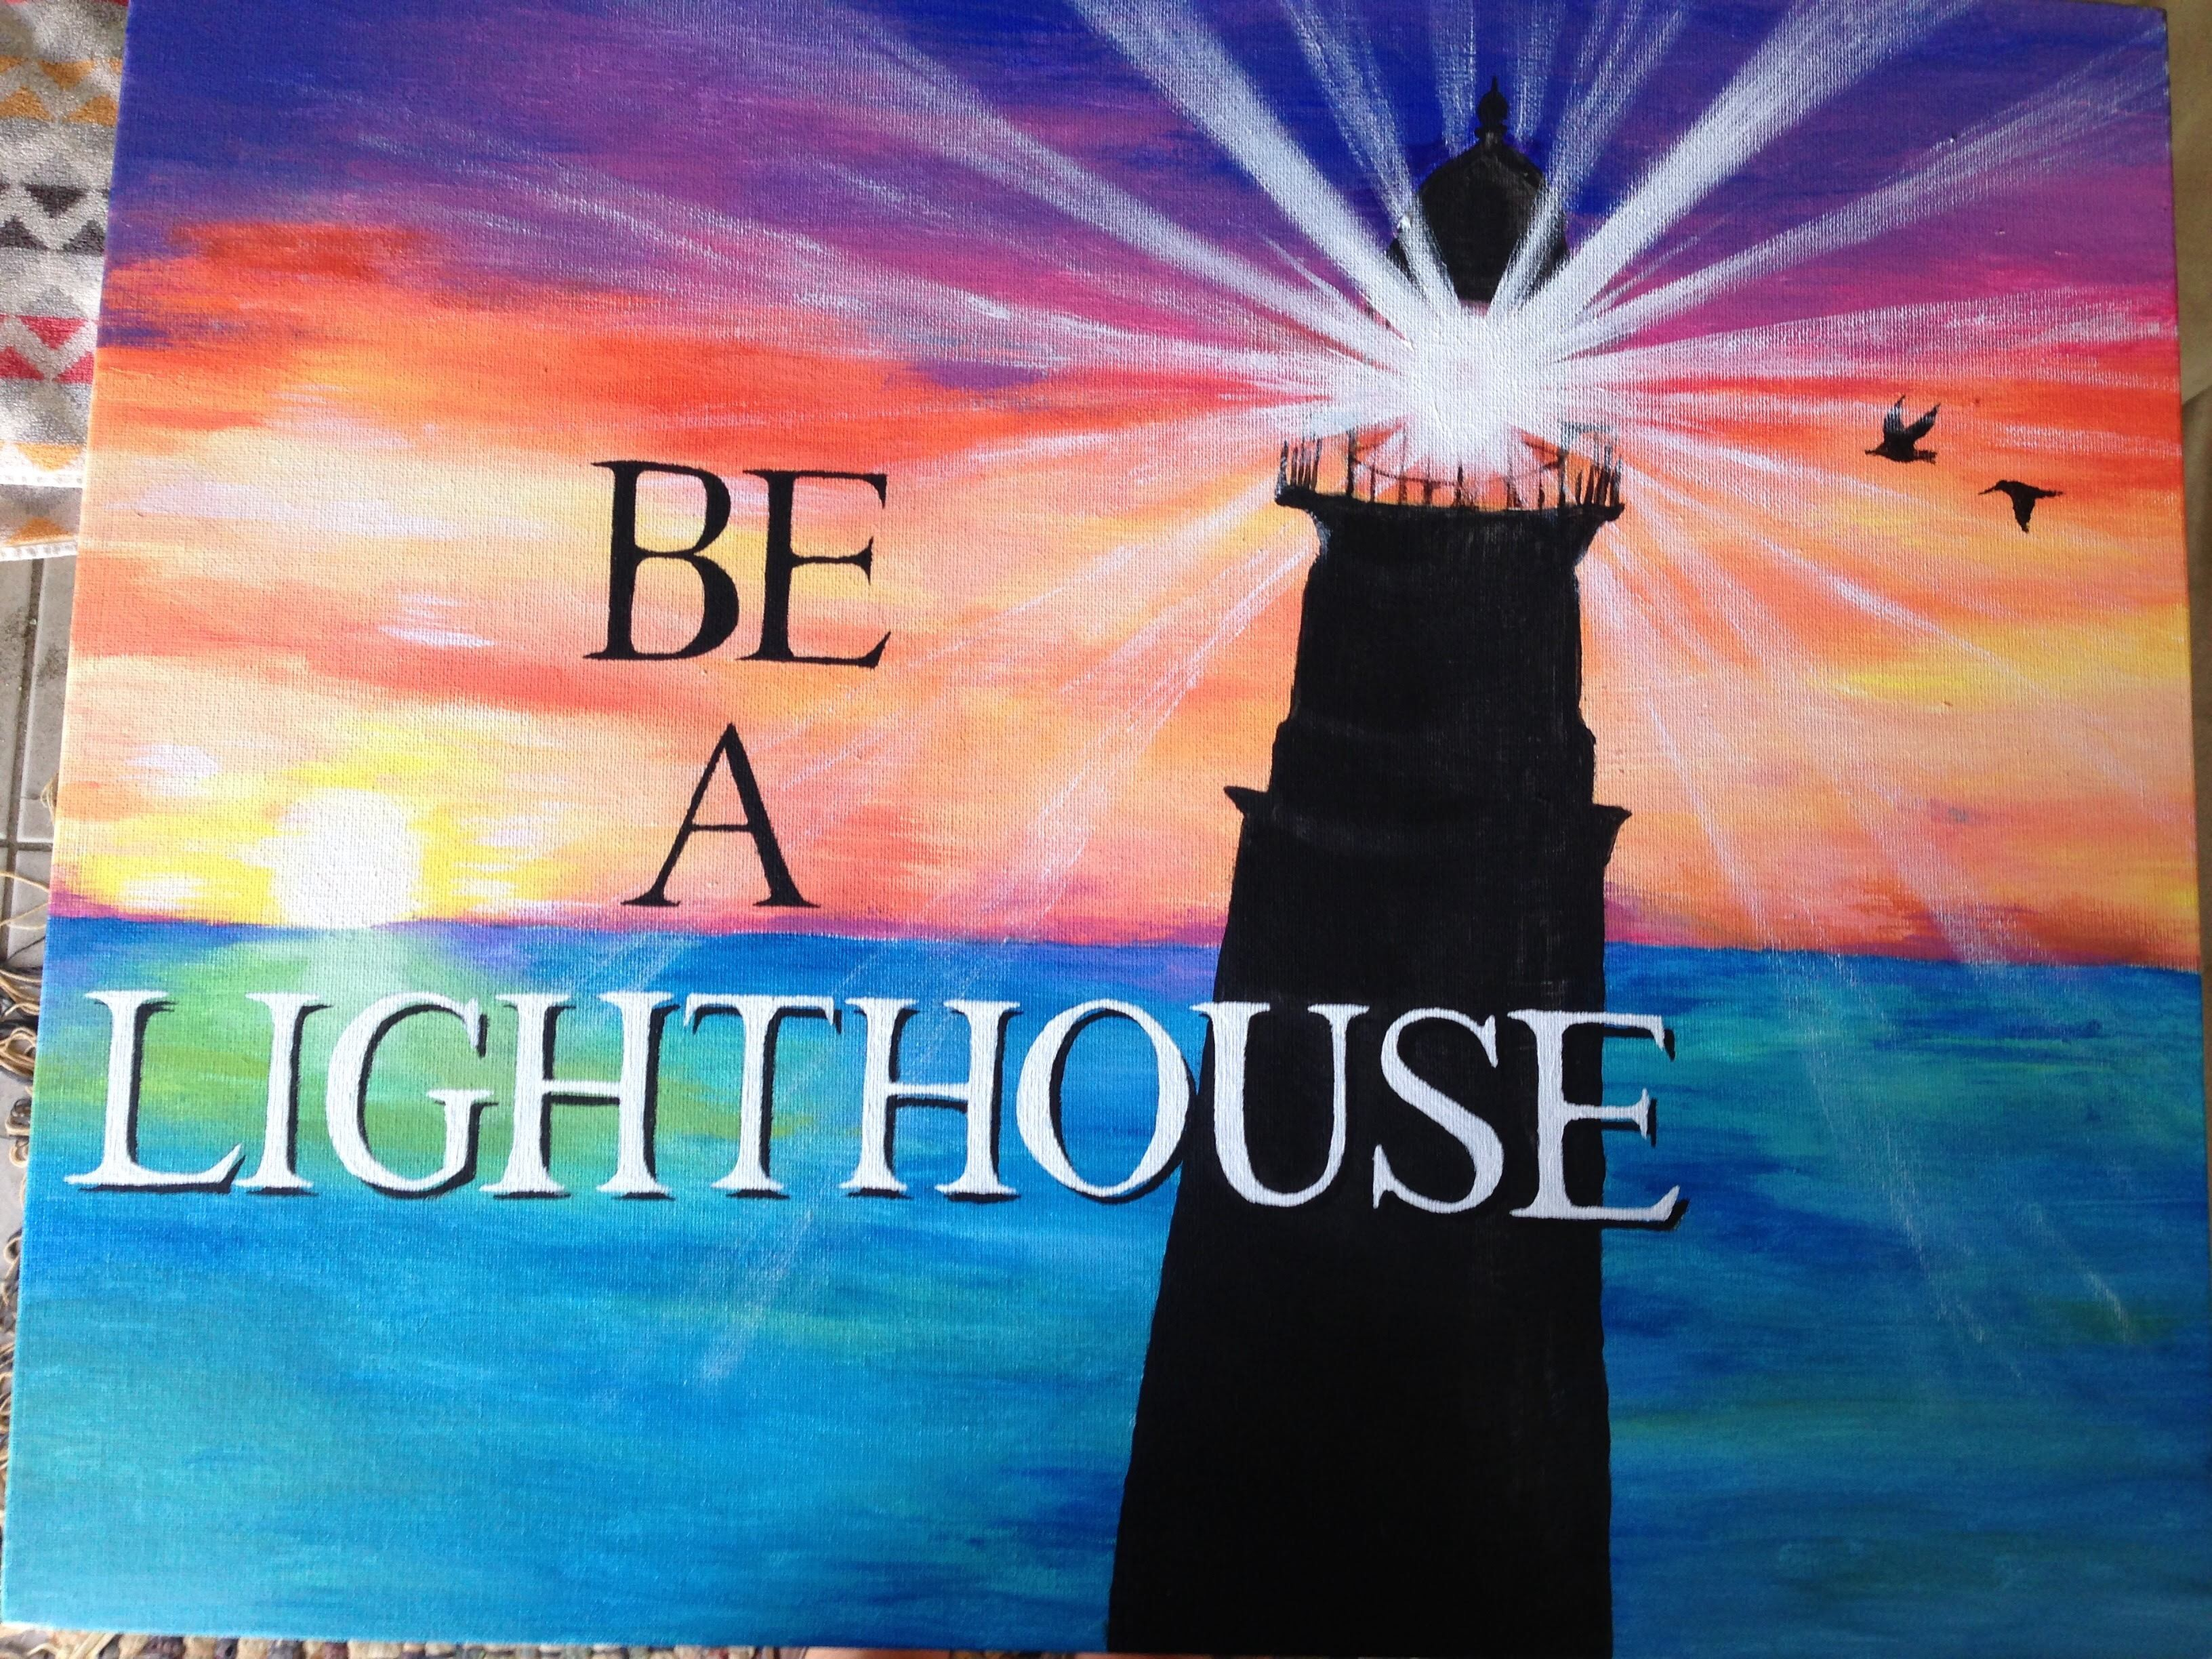 Colorful acrylic painting with lighthouse and quote